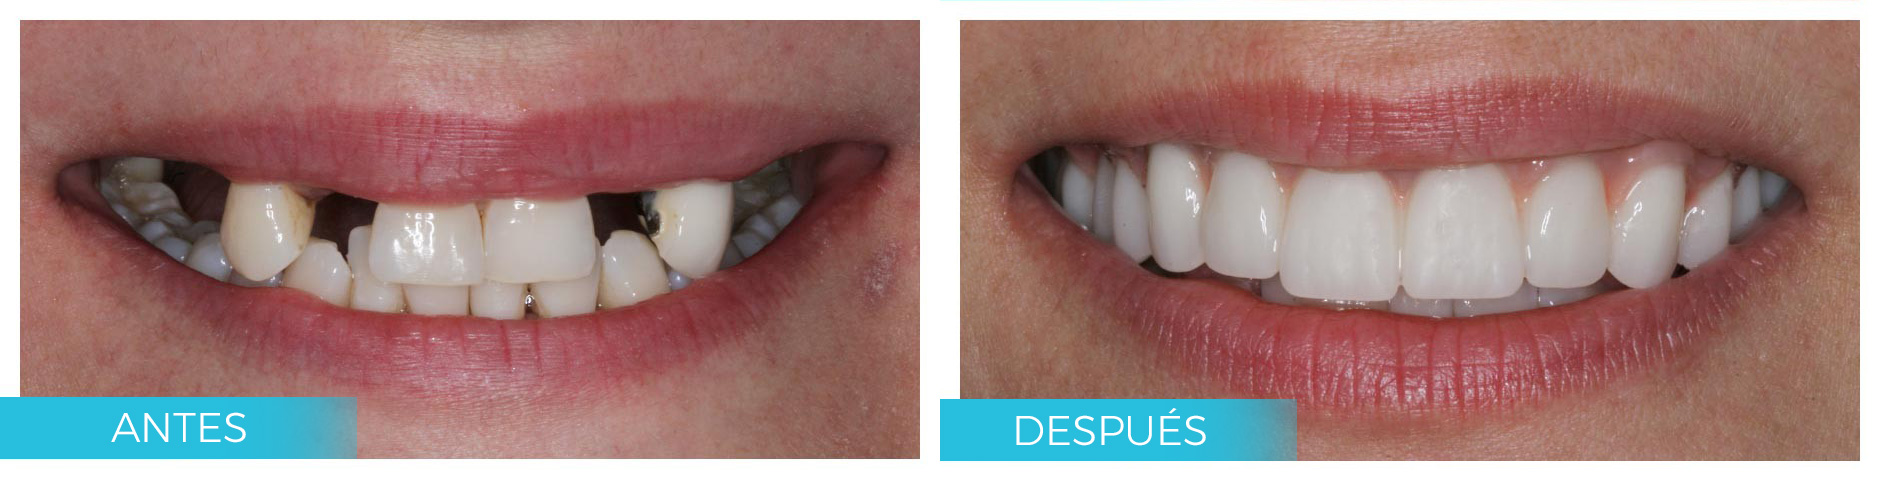 ANTES-DESPUES-IMPLANTES-V2